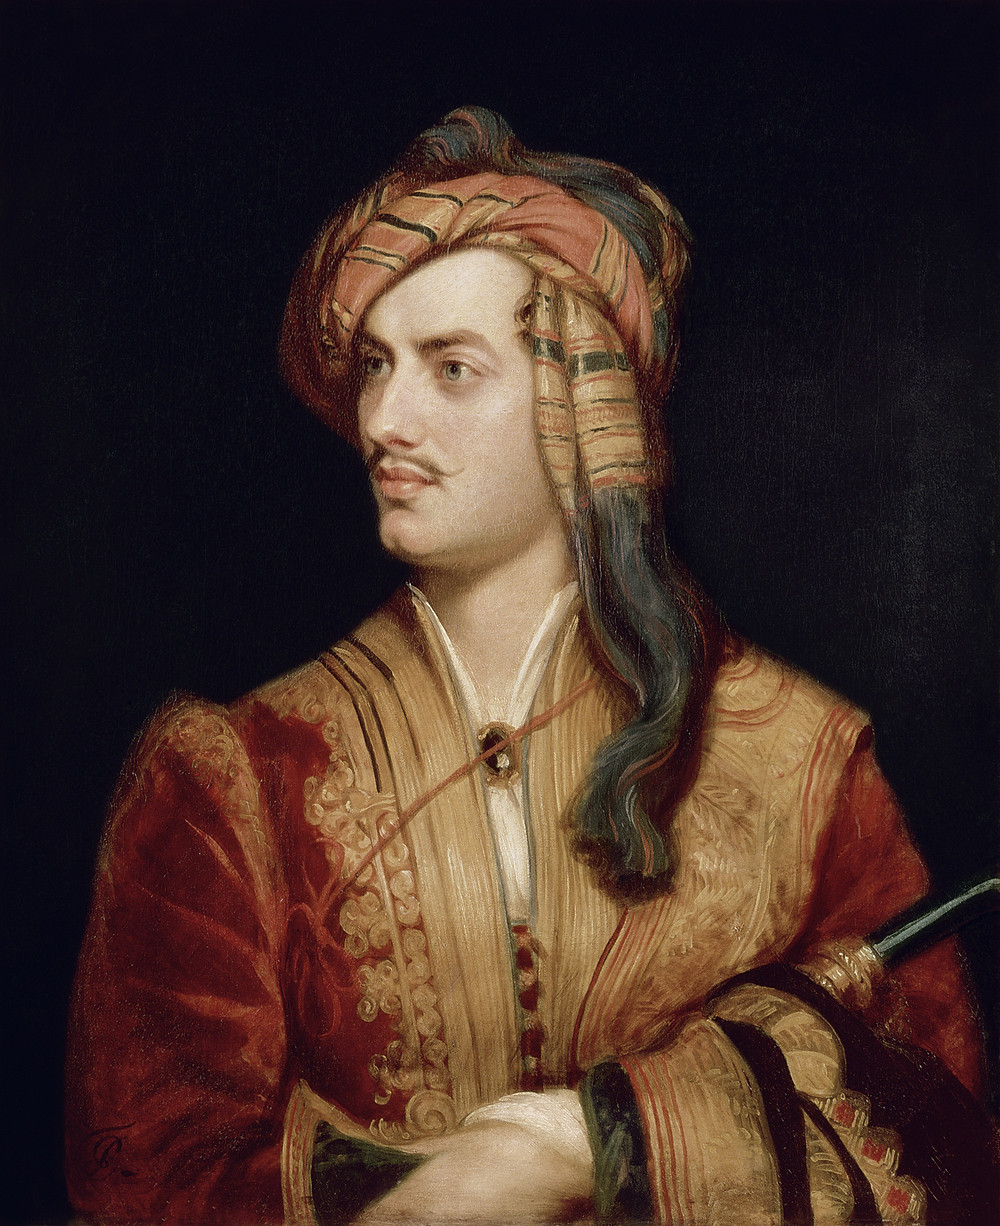 Lord Byron with a small mustache looks to the side. He is wearing a red jacket with gold trim, and a cold and red head wrap.